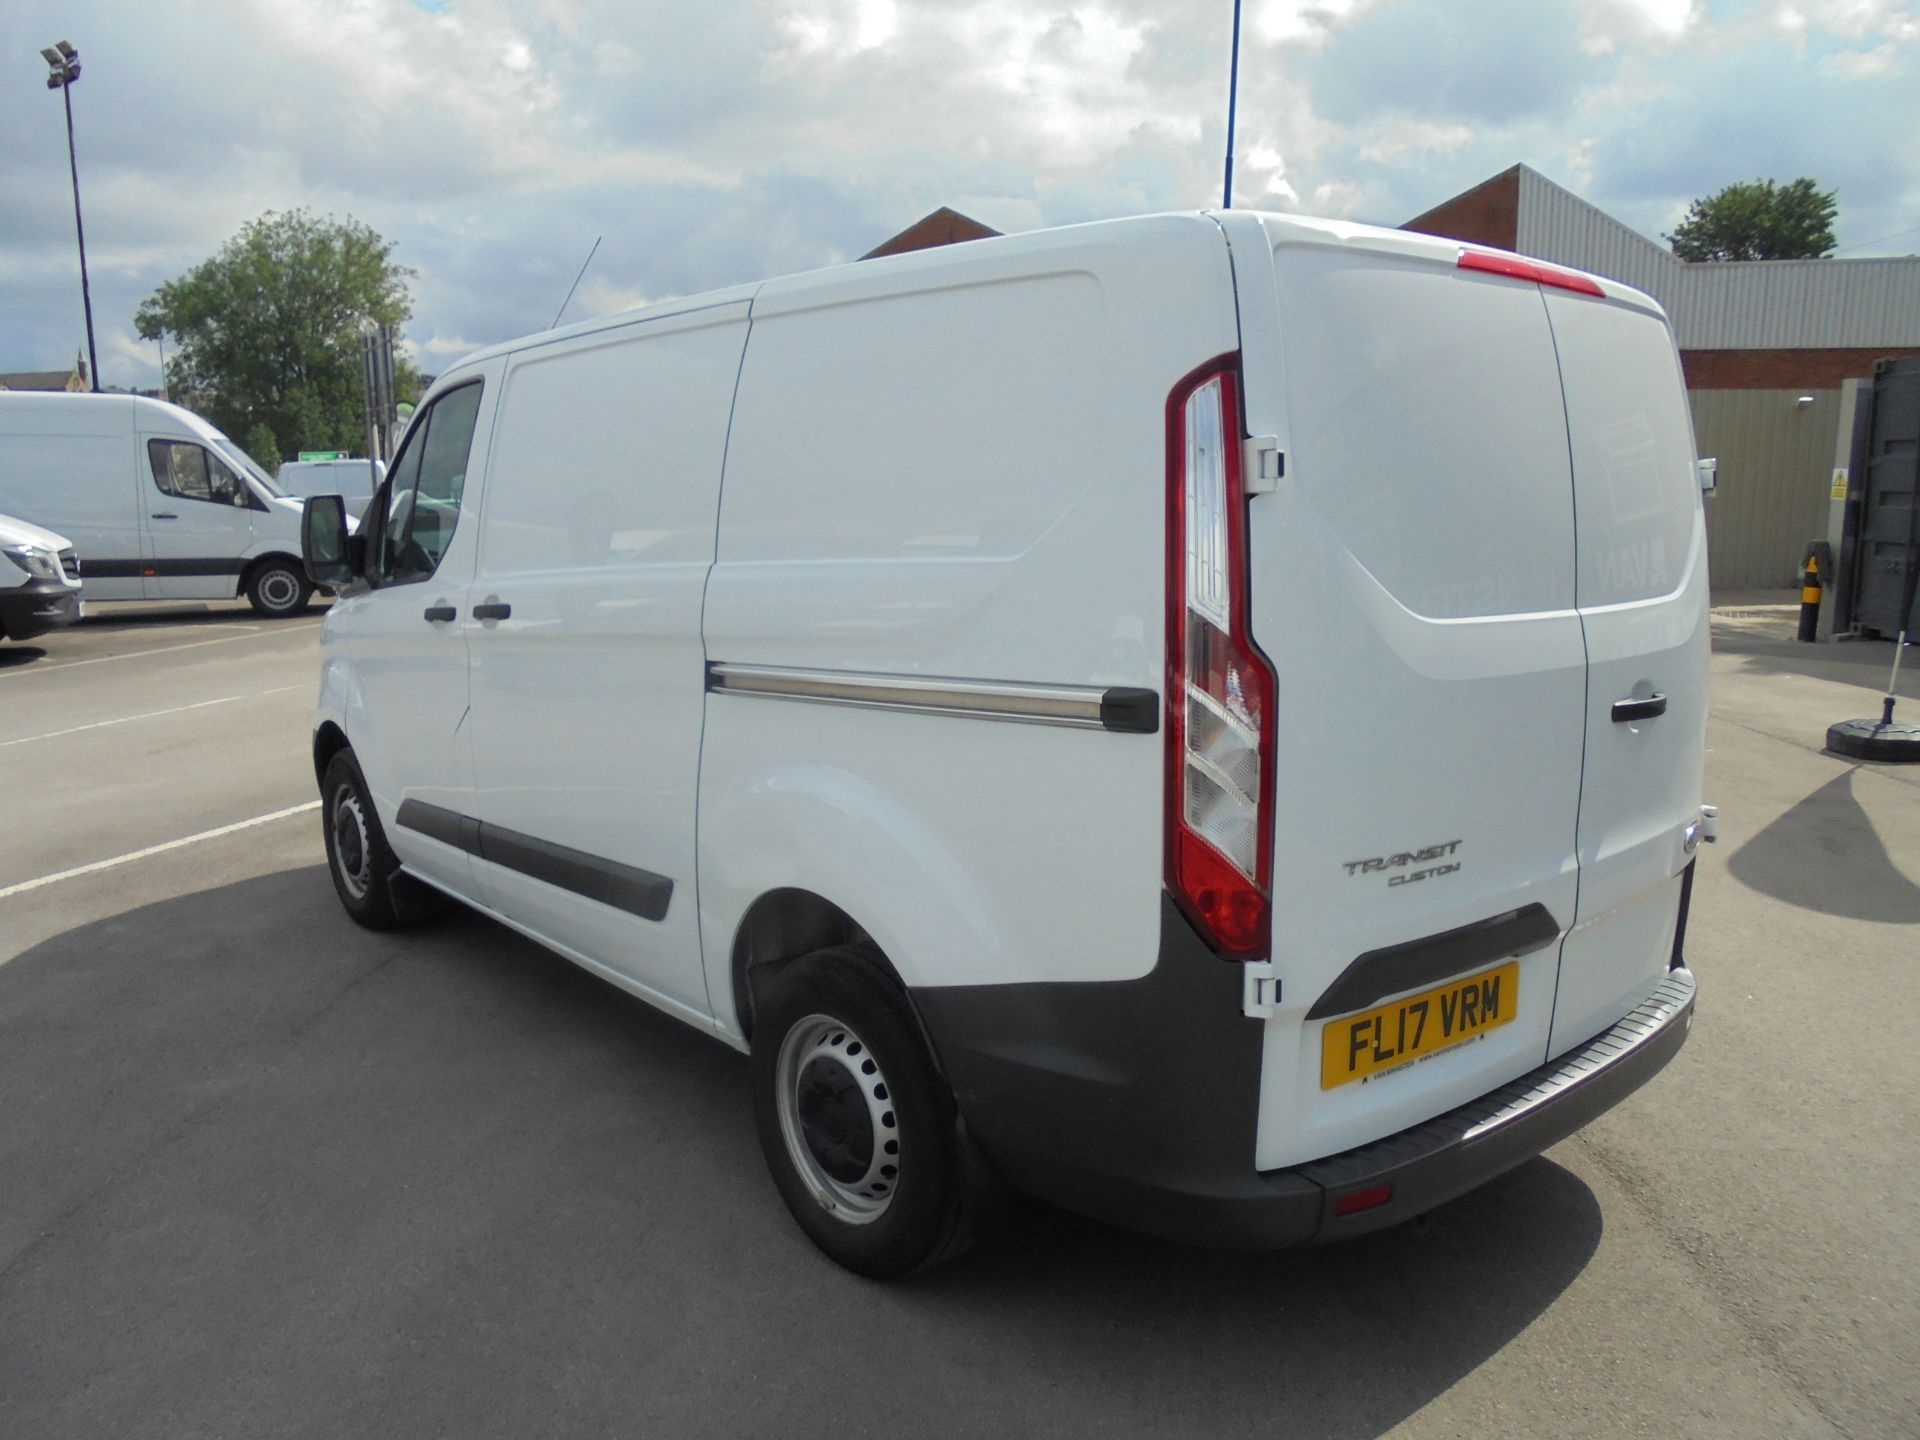 2017 Ford Transit Custom 2.0 Tdci 105Ps Low Roof Van VALUE RANGE VEHICLE CONDITION REFLECTED IN PRICE* (FL17VRM) Image 5